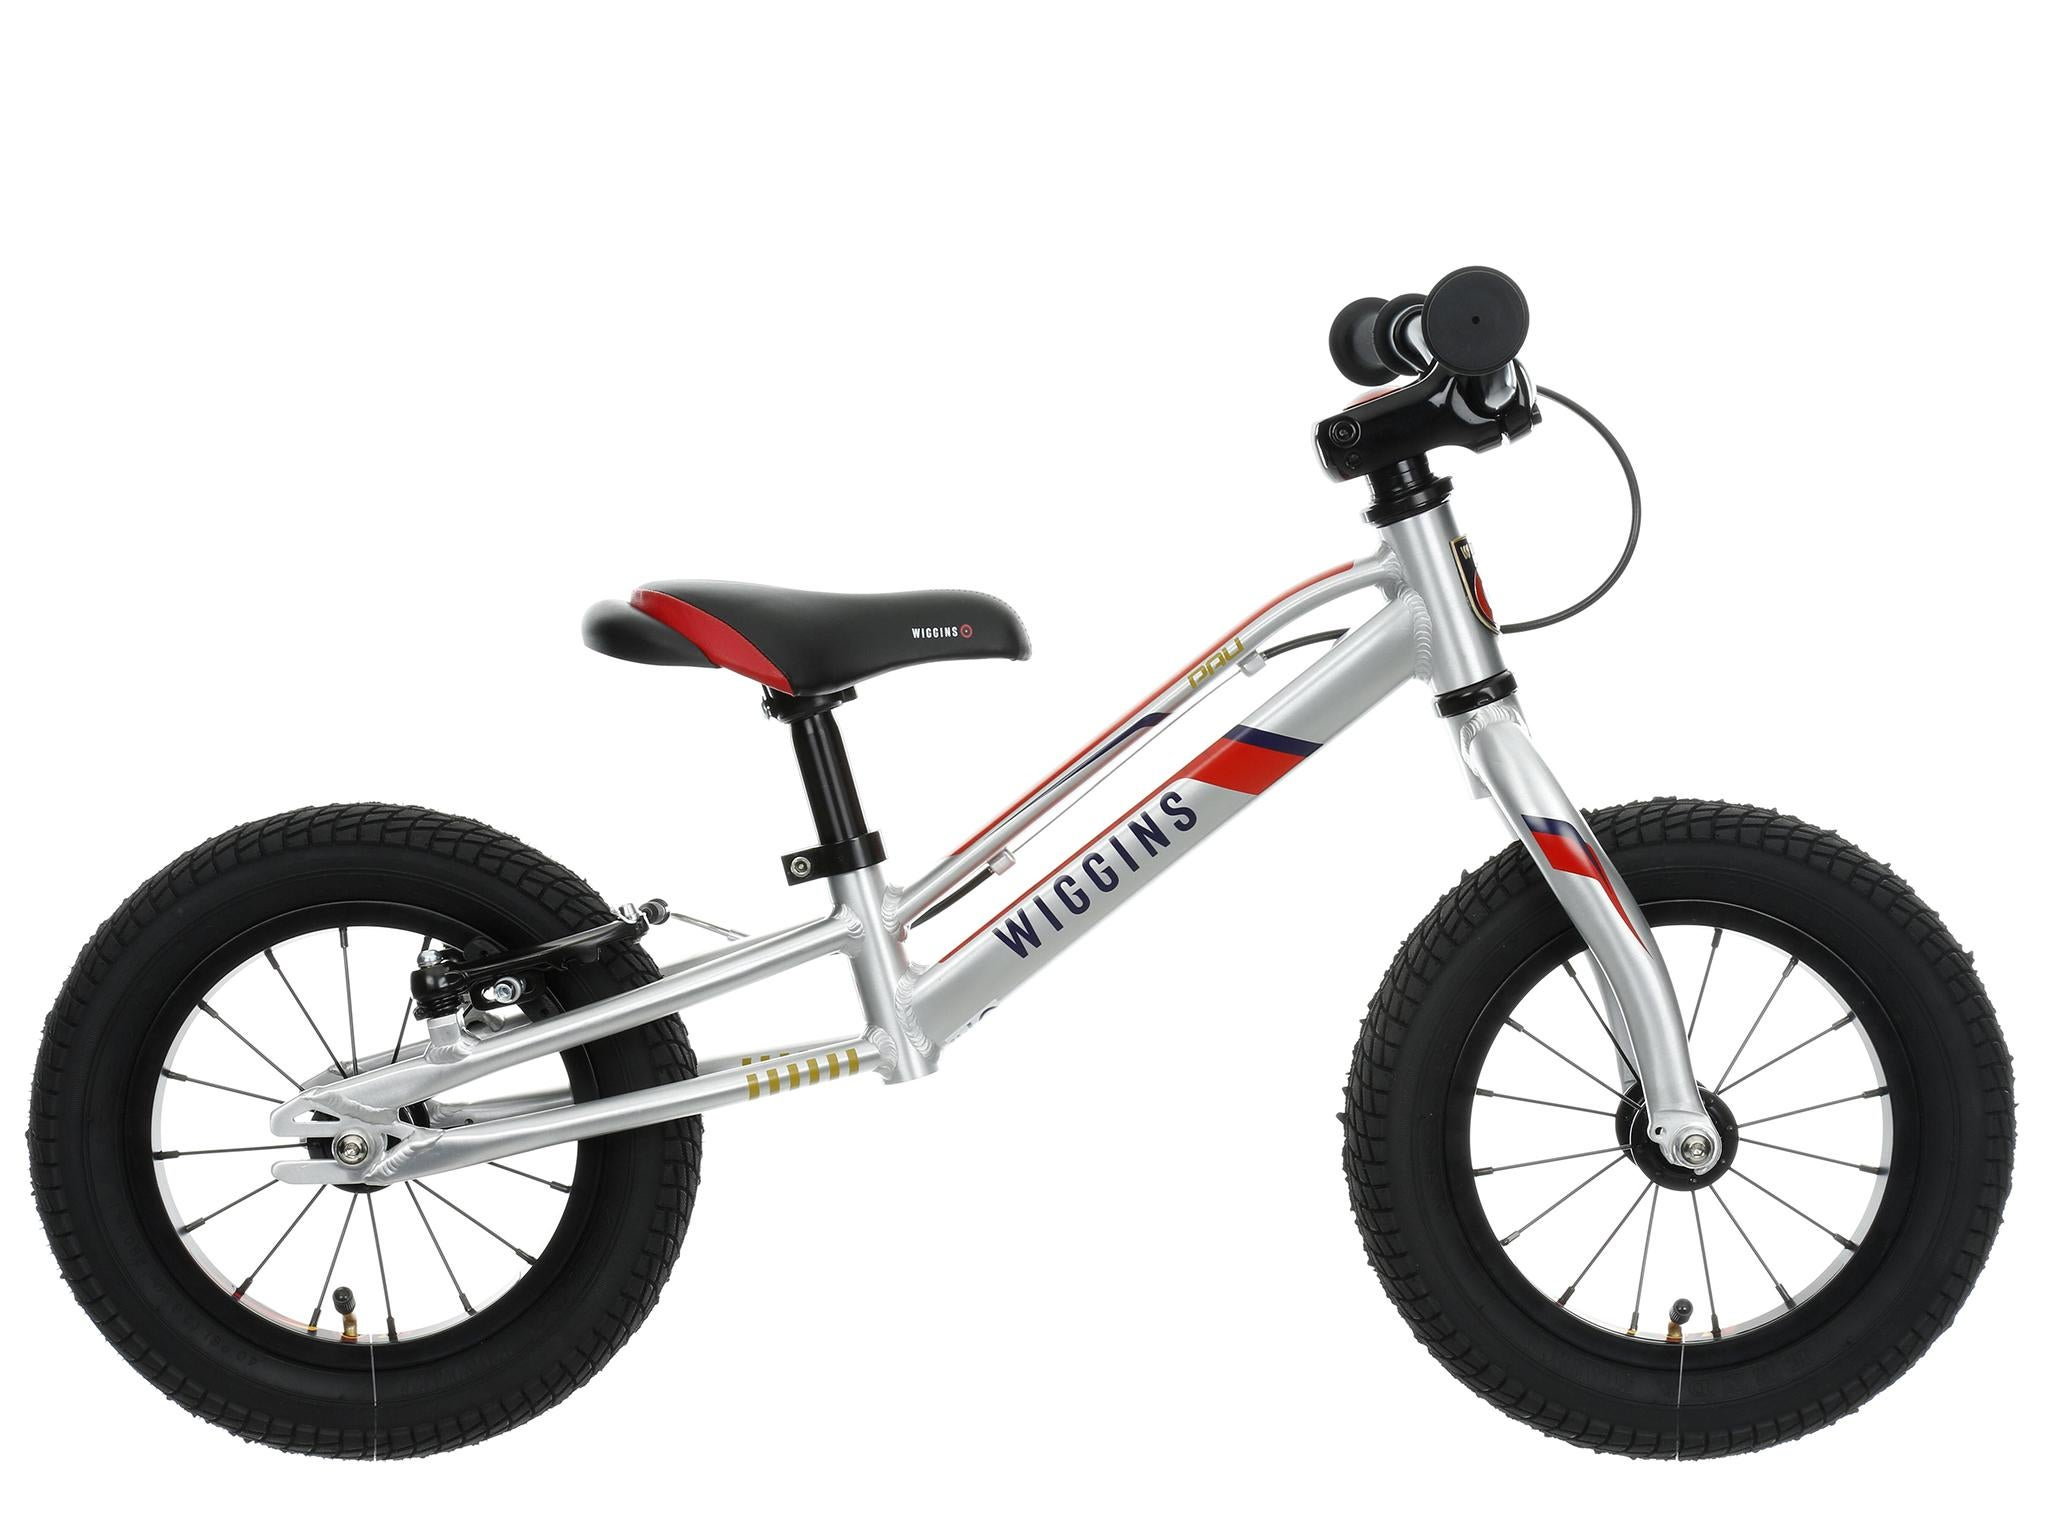 10 best balance bikes | The Independent